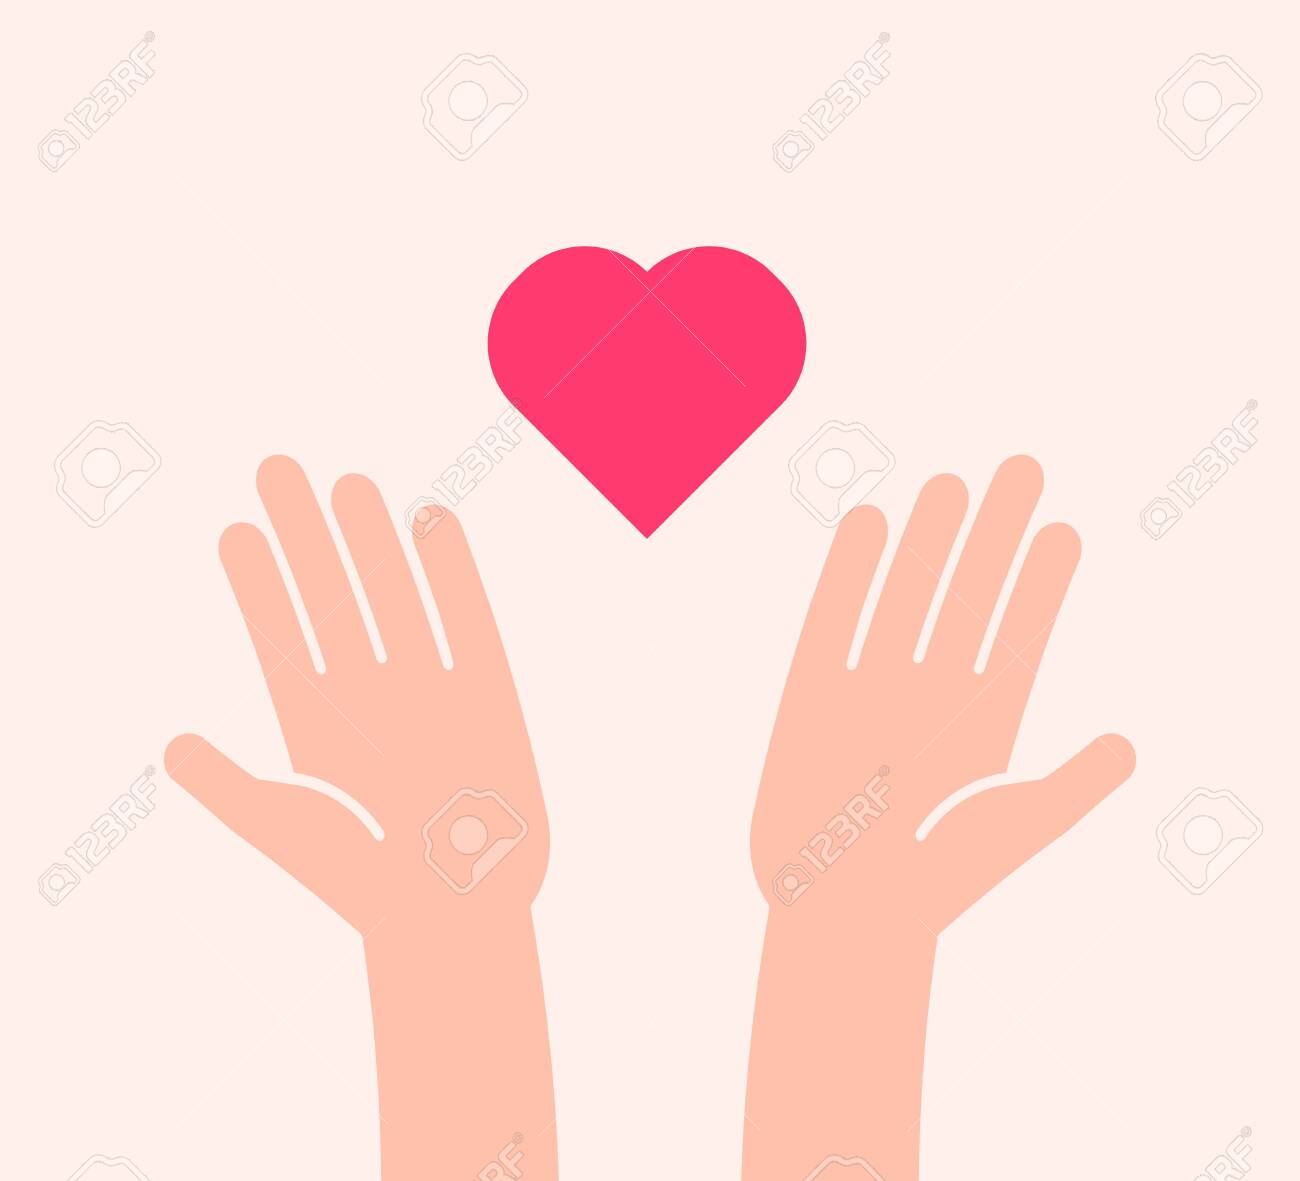 Flat background with two hands receiving or sending heart icon. Vector illustration for charity, help, supporting, work of volunteers, donation, love and kindness - 134503211